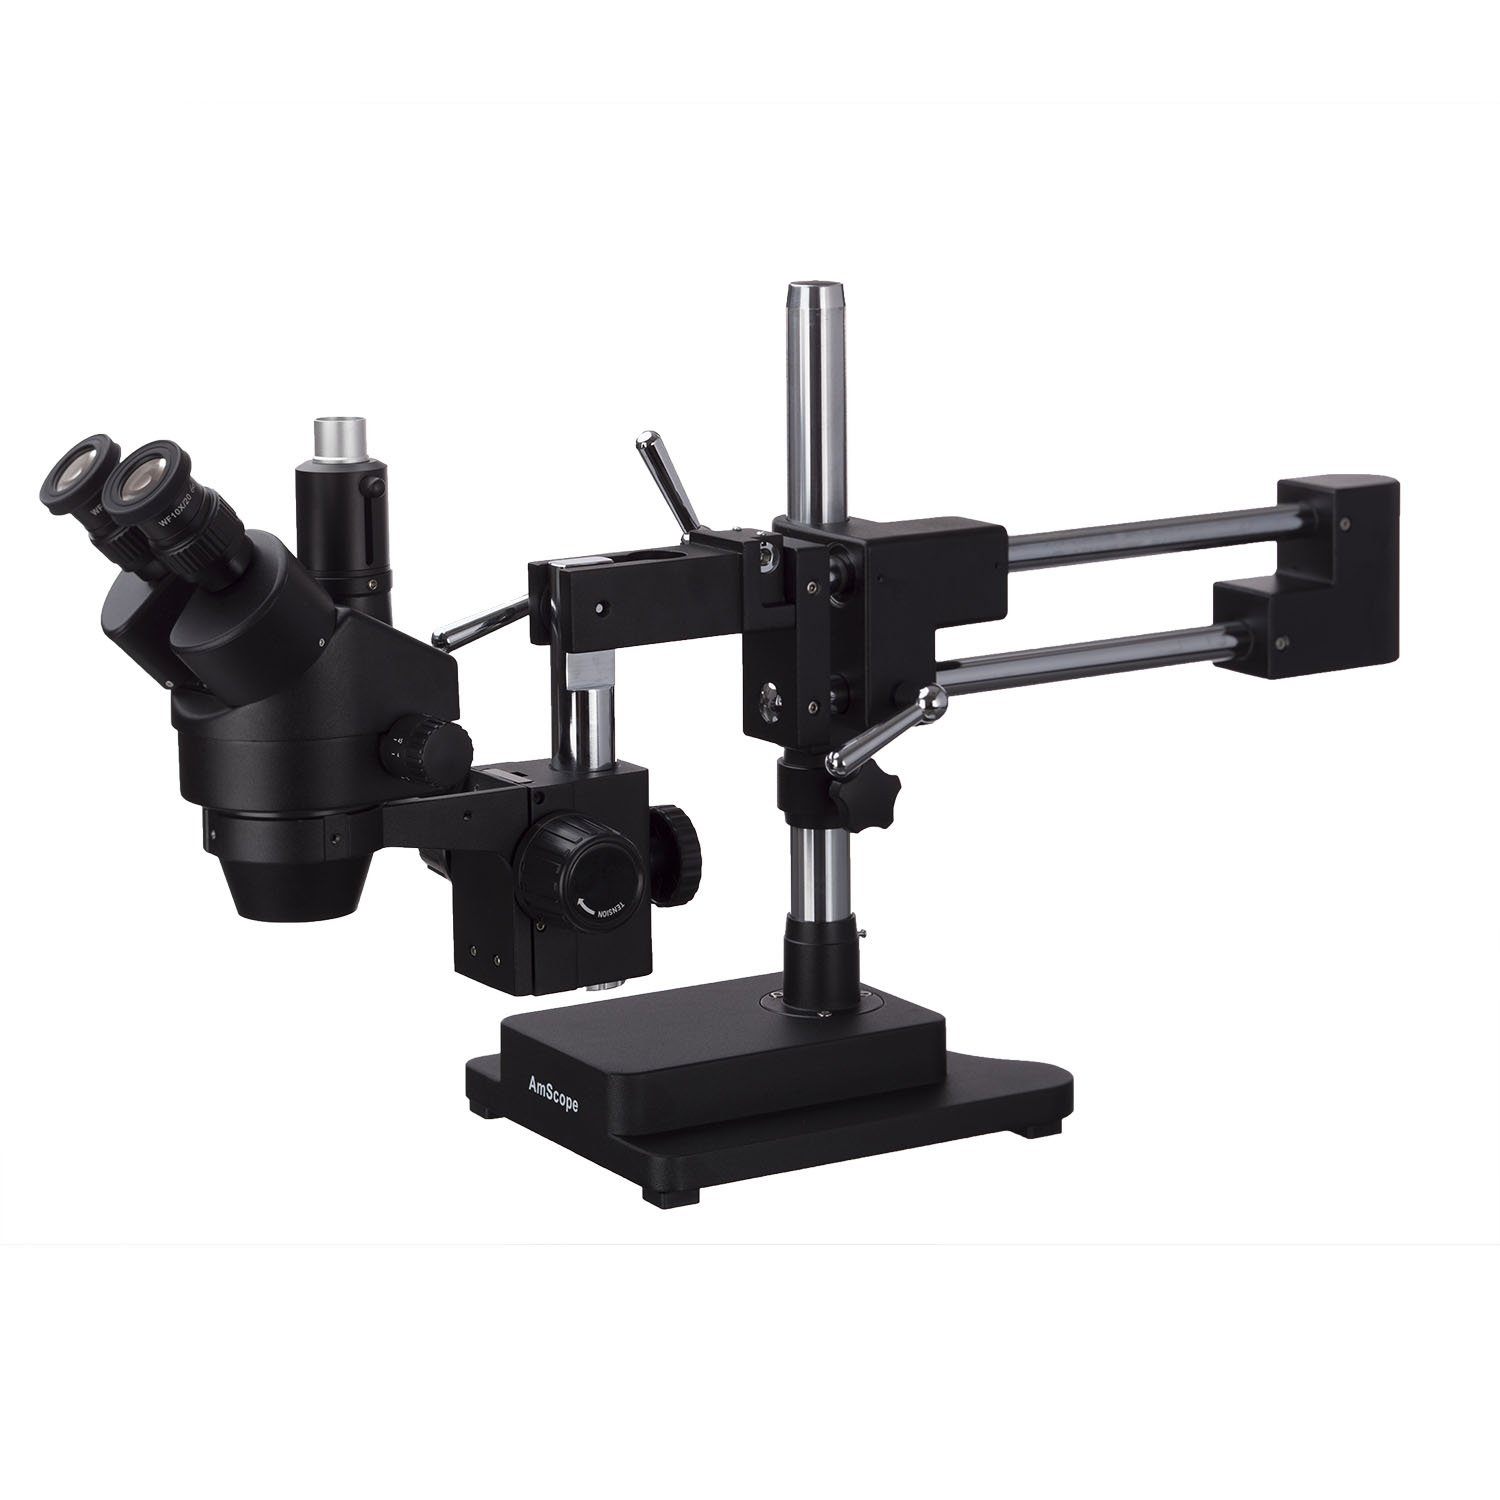 AmScope 3.5X-180X Trinocular Stereo Zoom Microscope with Black Double Arm Boom Stand by AmScope